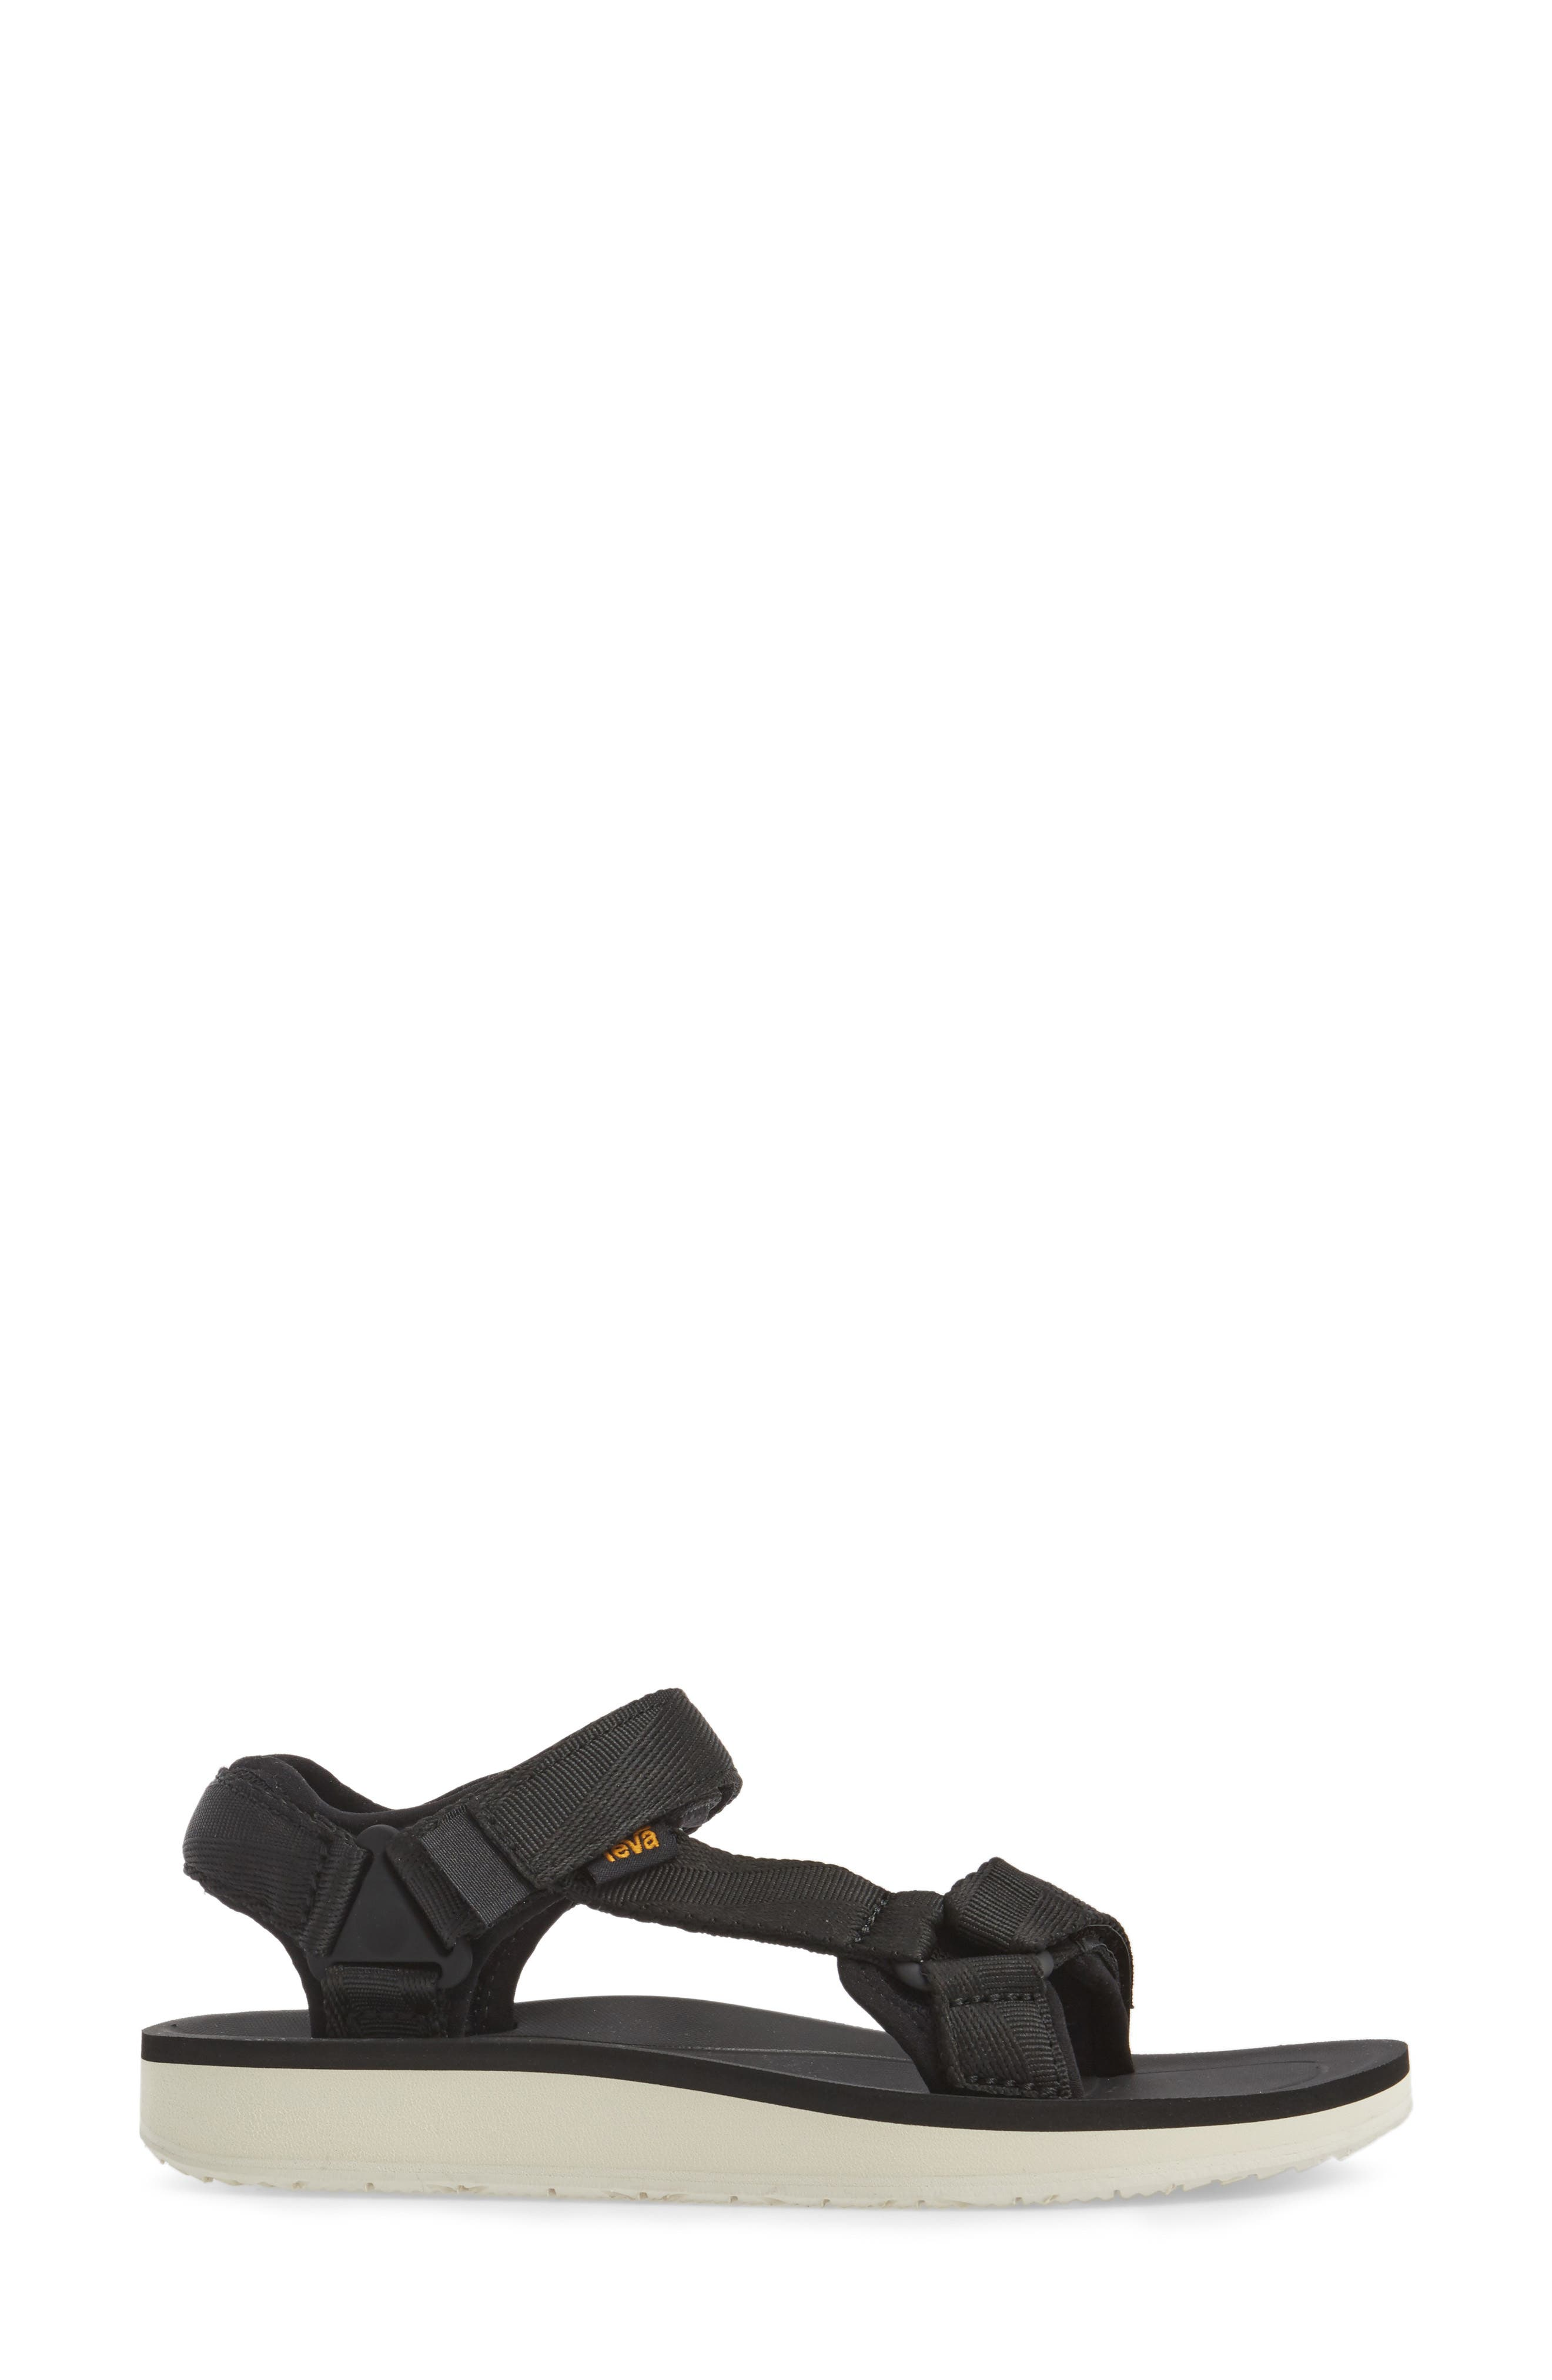 Original Universal Premier Sandal,                             Alternate thumbnail 3, color,                             BLACK FABRIC